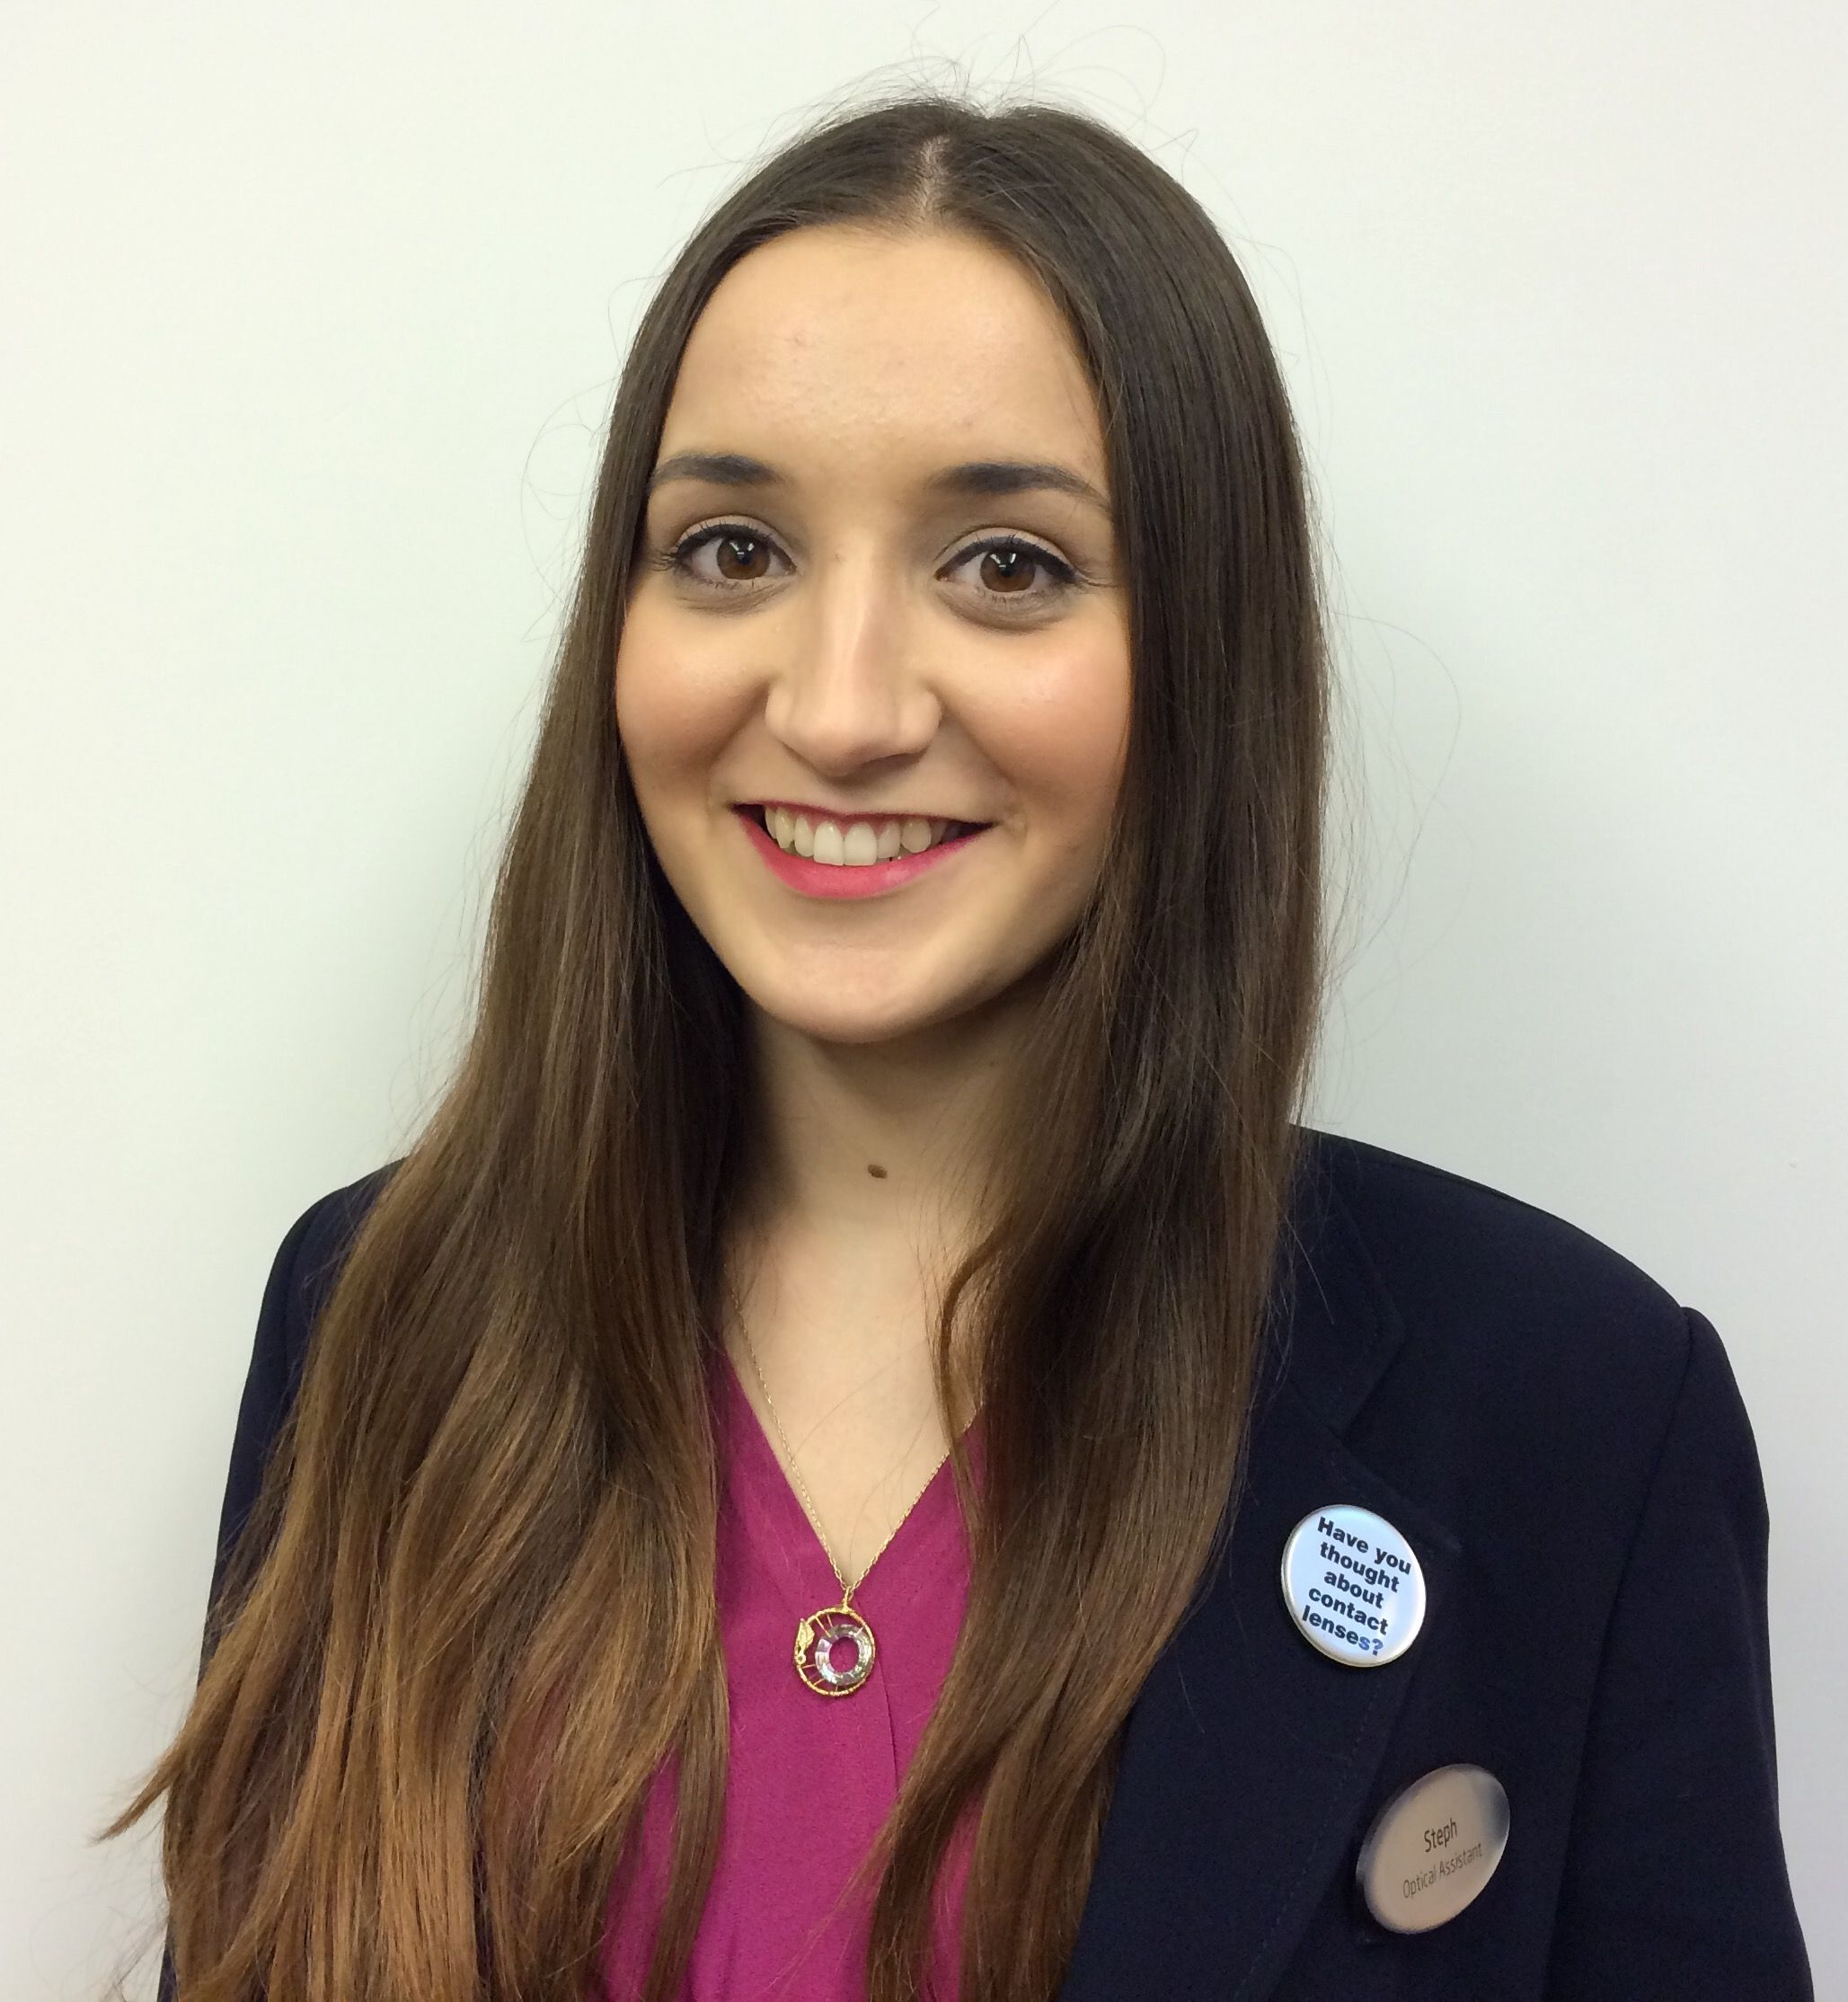 Stephanie Karagiannidis, optical and contact lens assistant at Specsavers Worthing